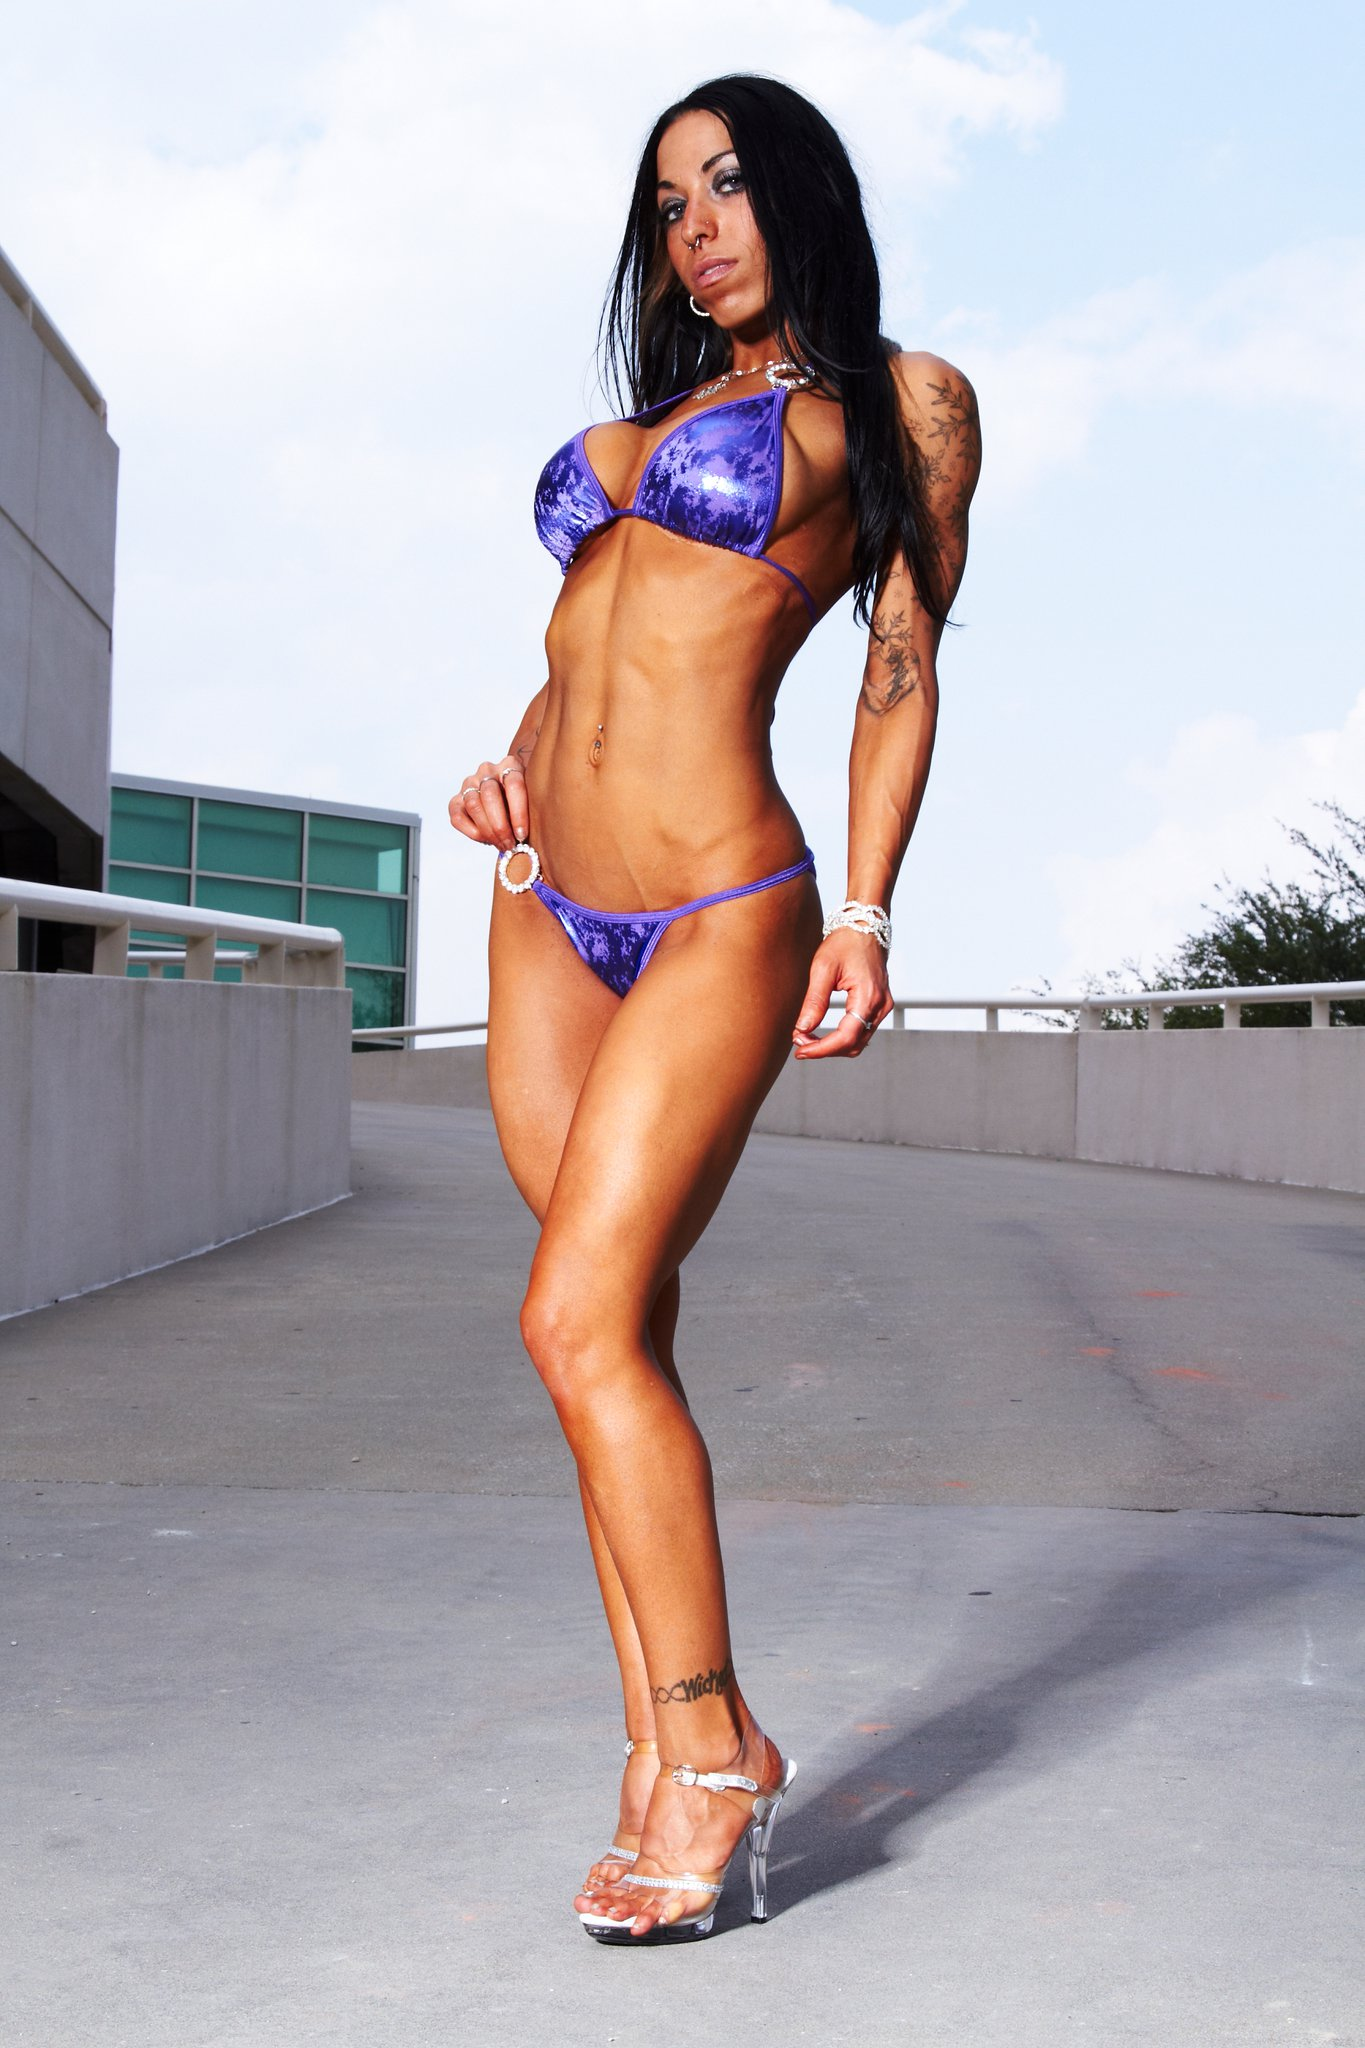 NPC Bikini Athlete Stephanie Wicked Talks With RateMyArms ...